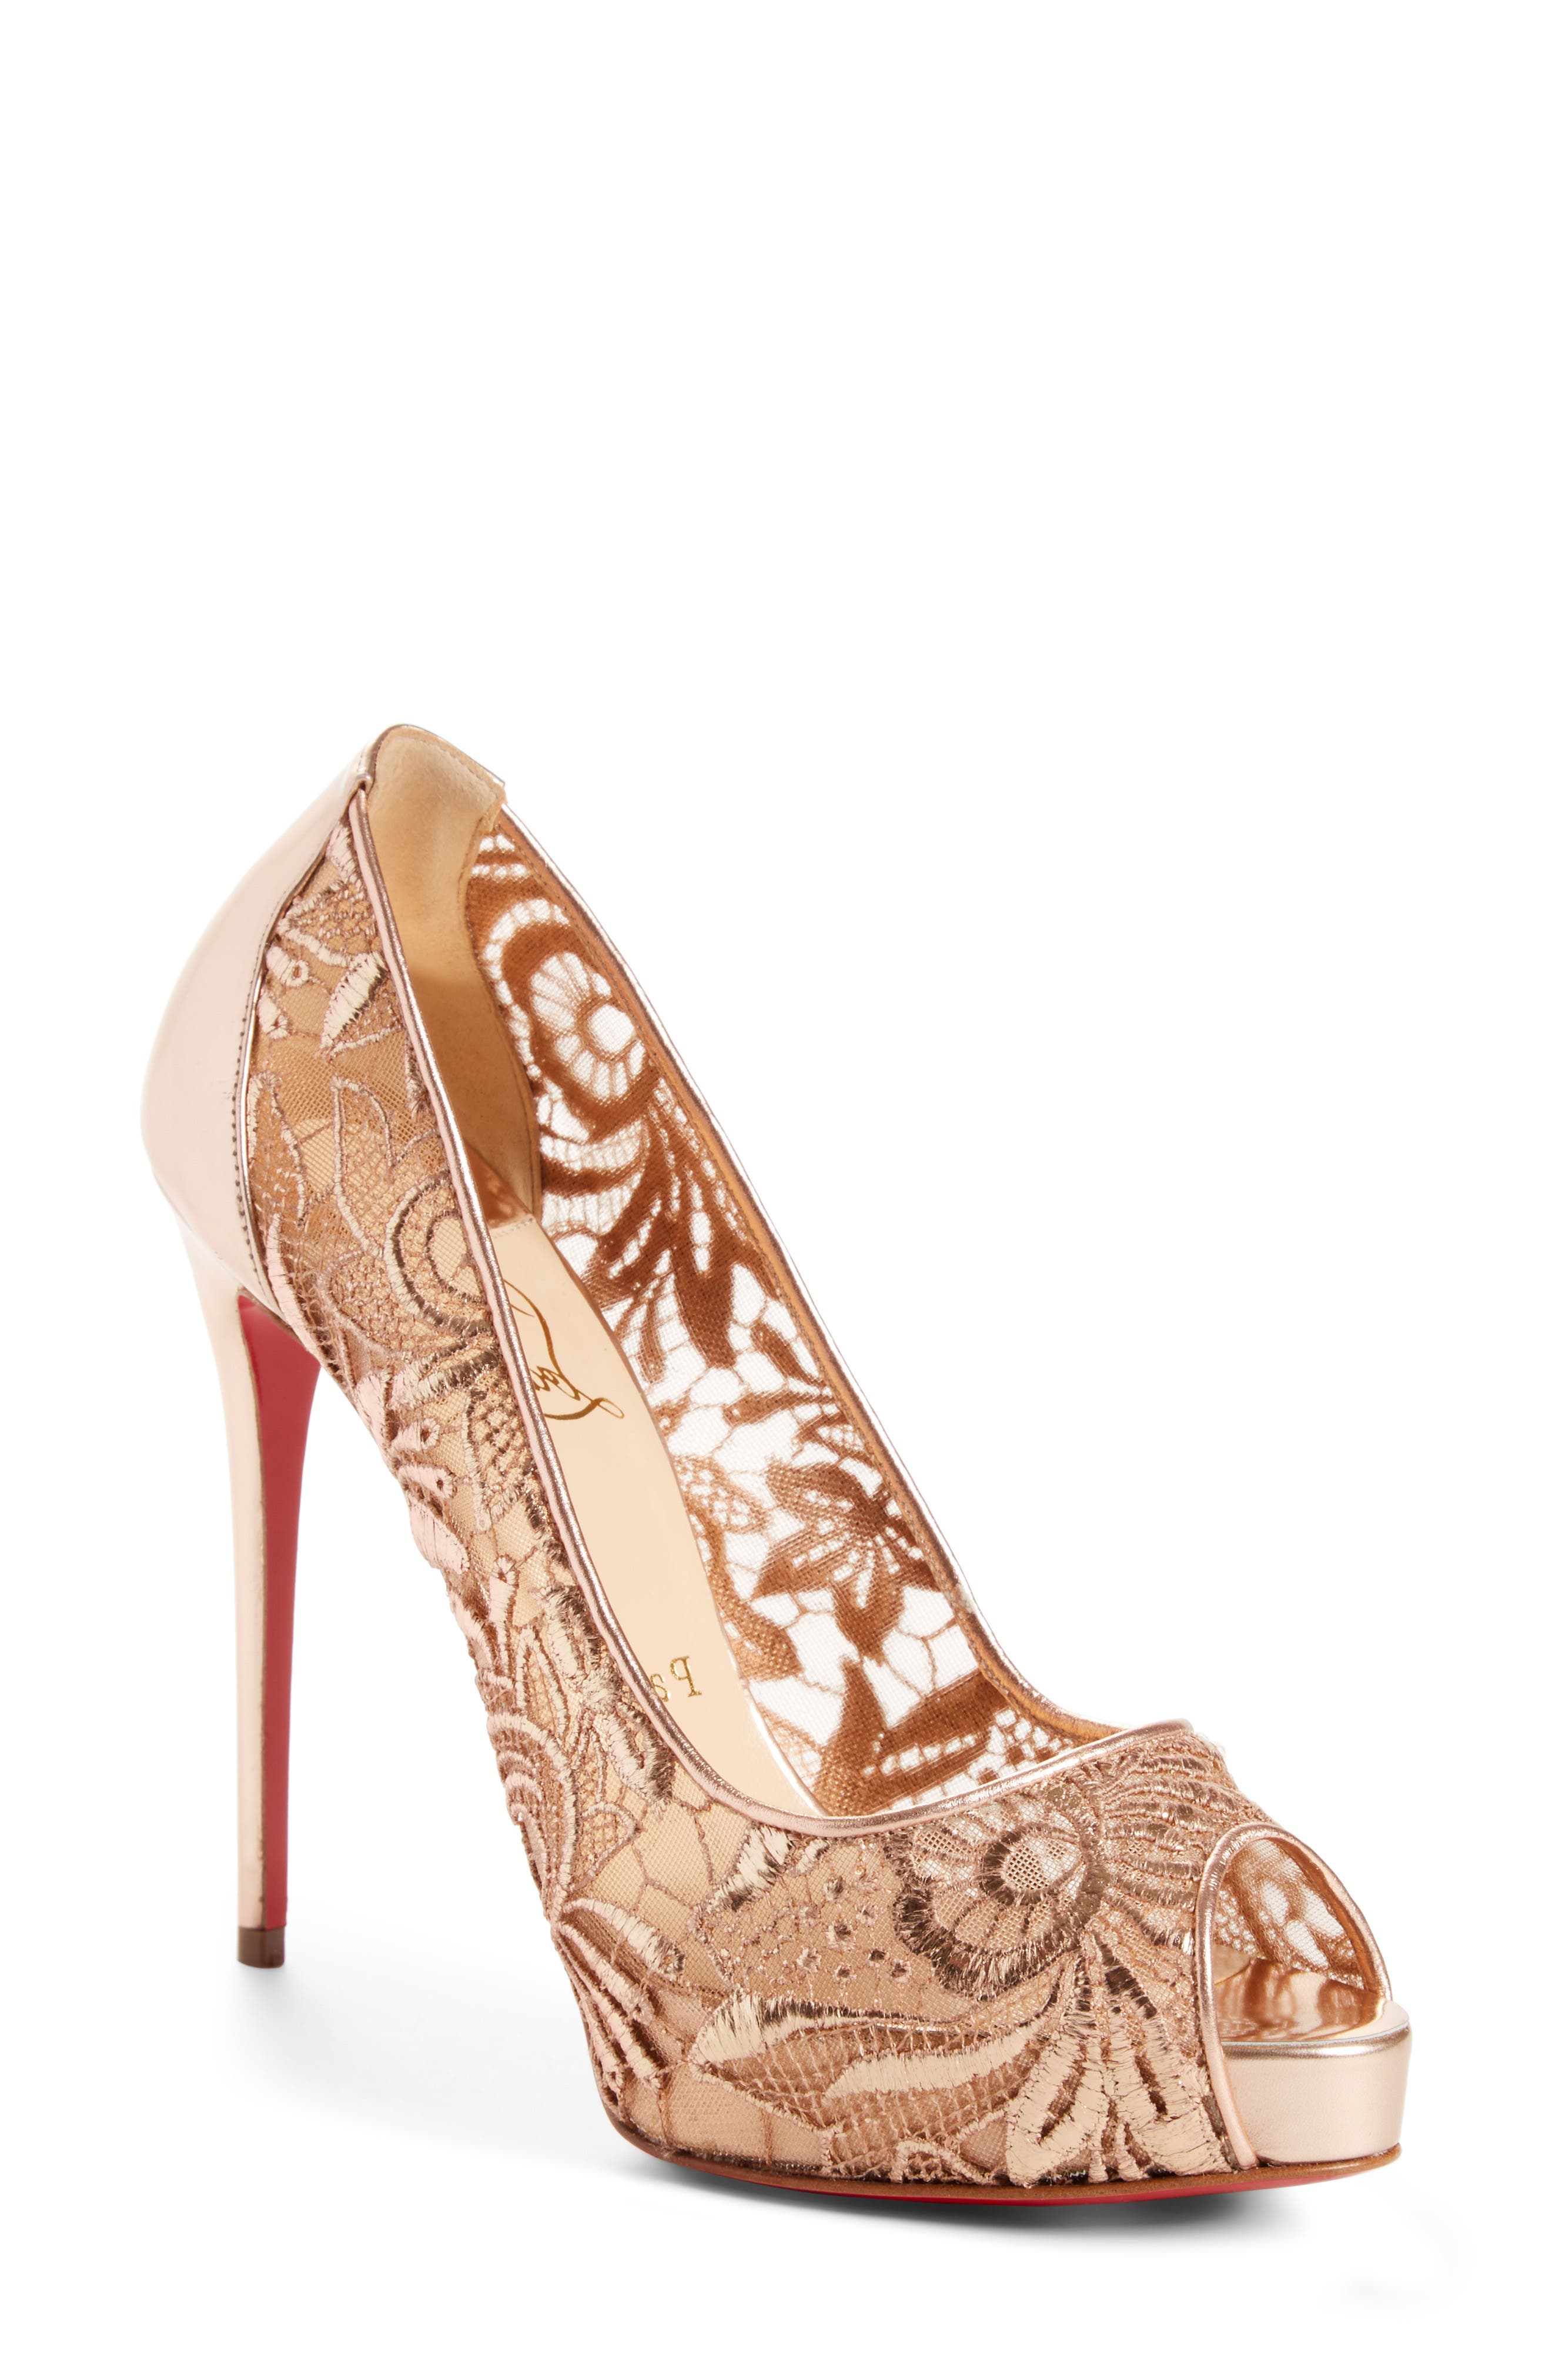 christian louboutin store in paris review